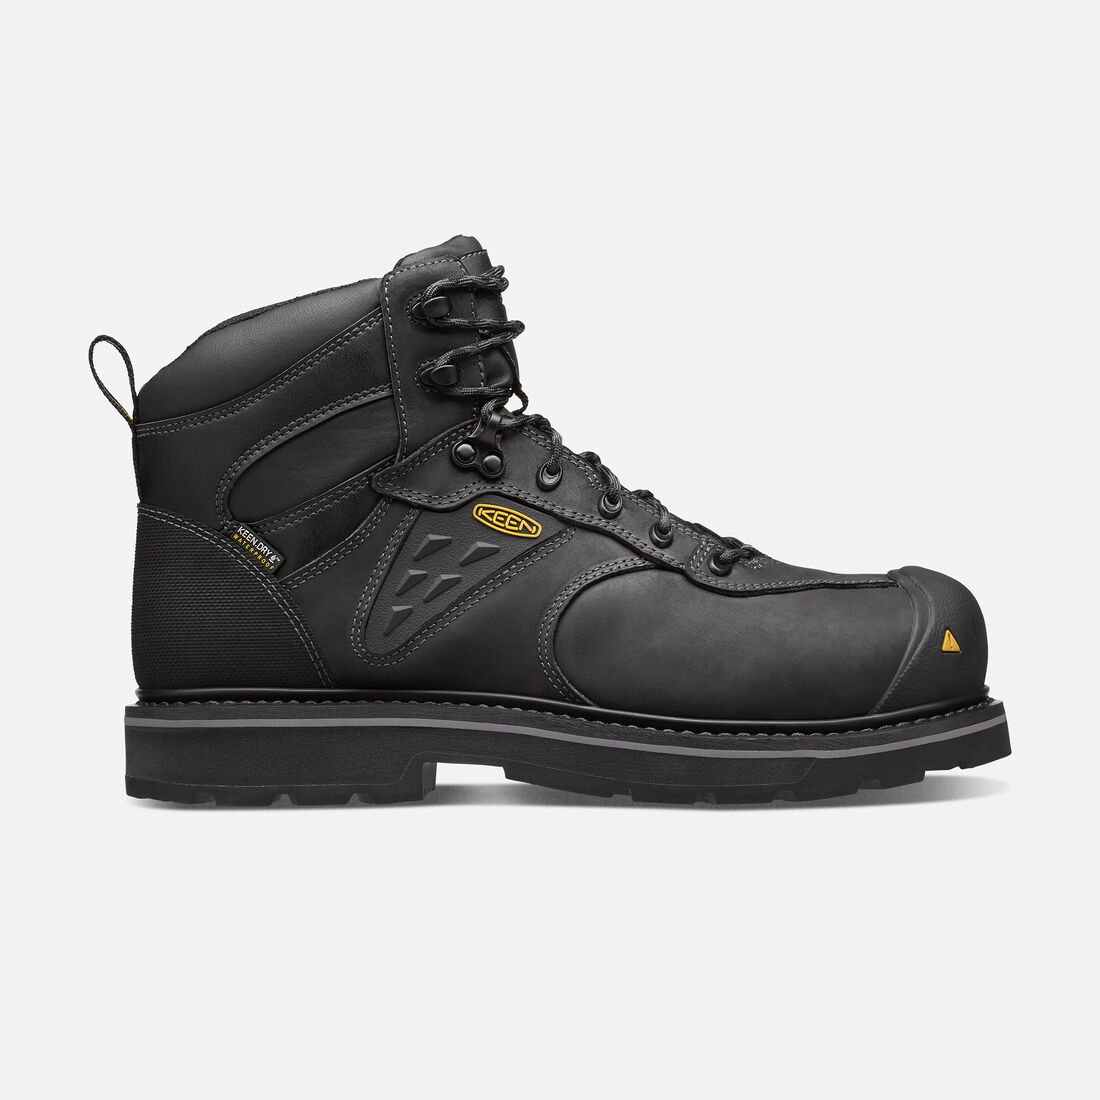 Men's Tacoma Waterproof (Composite Toe) in Black - large view.